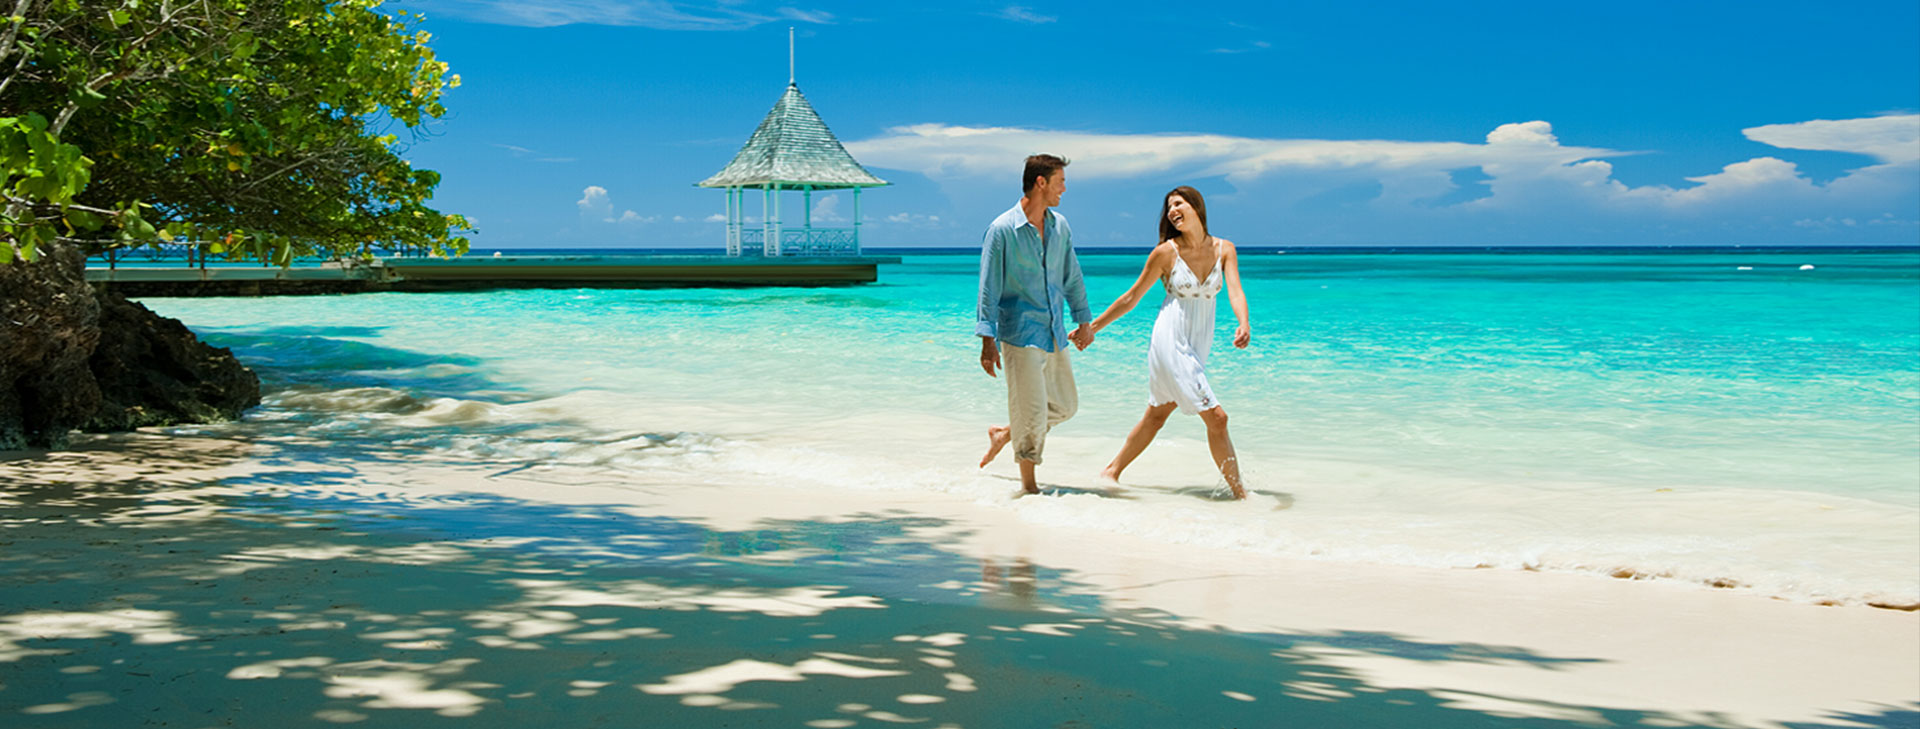 Win a Free 4-Day Vacation Sweepstakes at a Sandals Resort